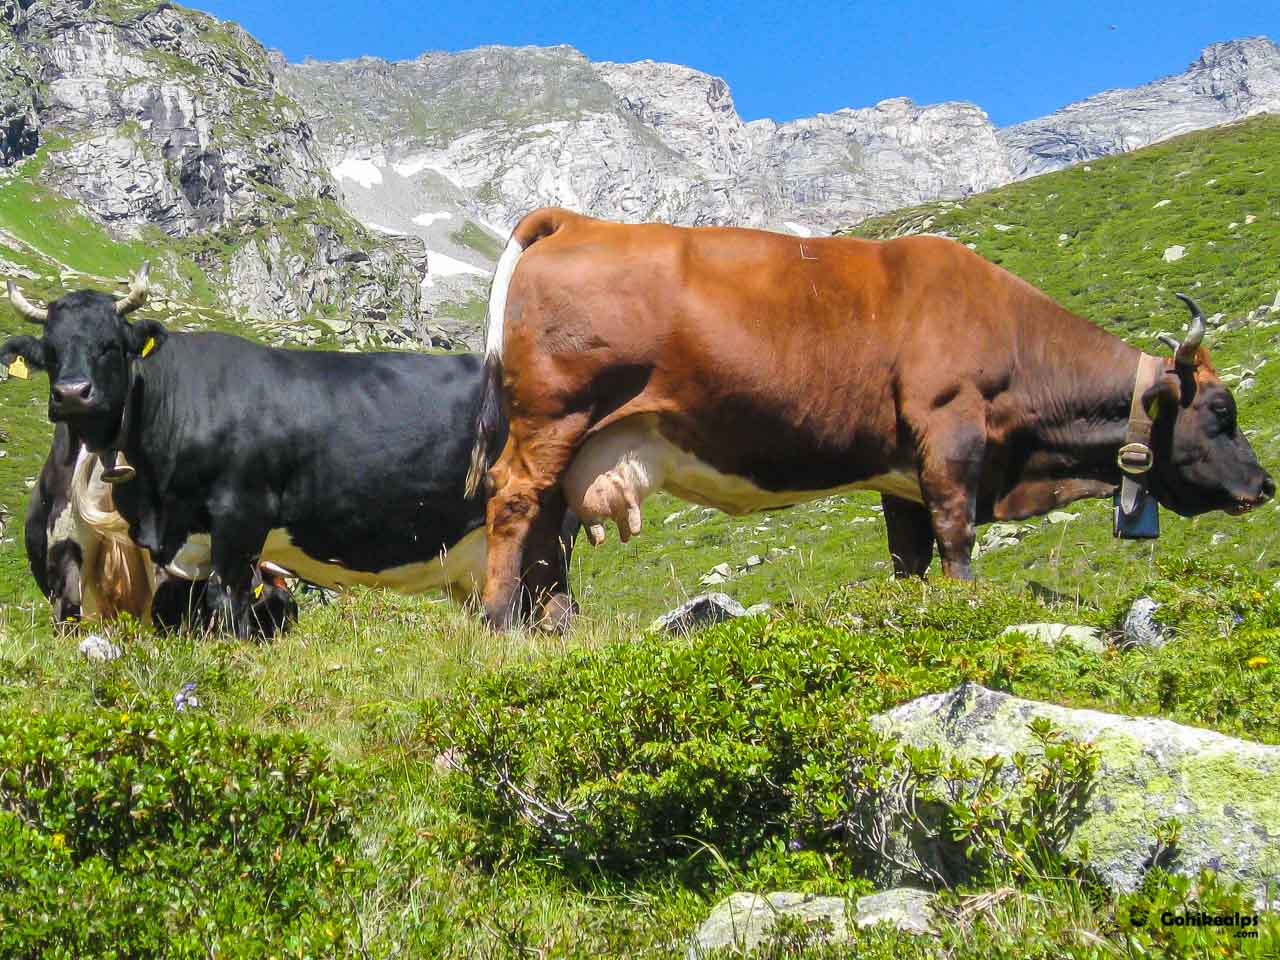 Cows, probably the most typical Alpine animal. On the way up to Friesenberghaus.